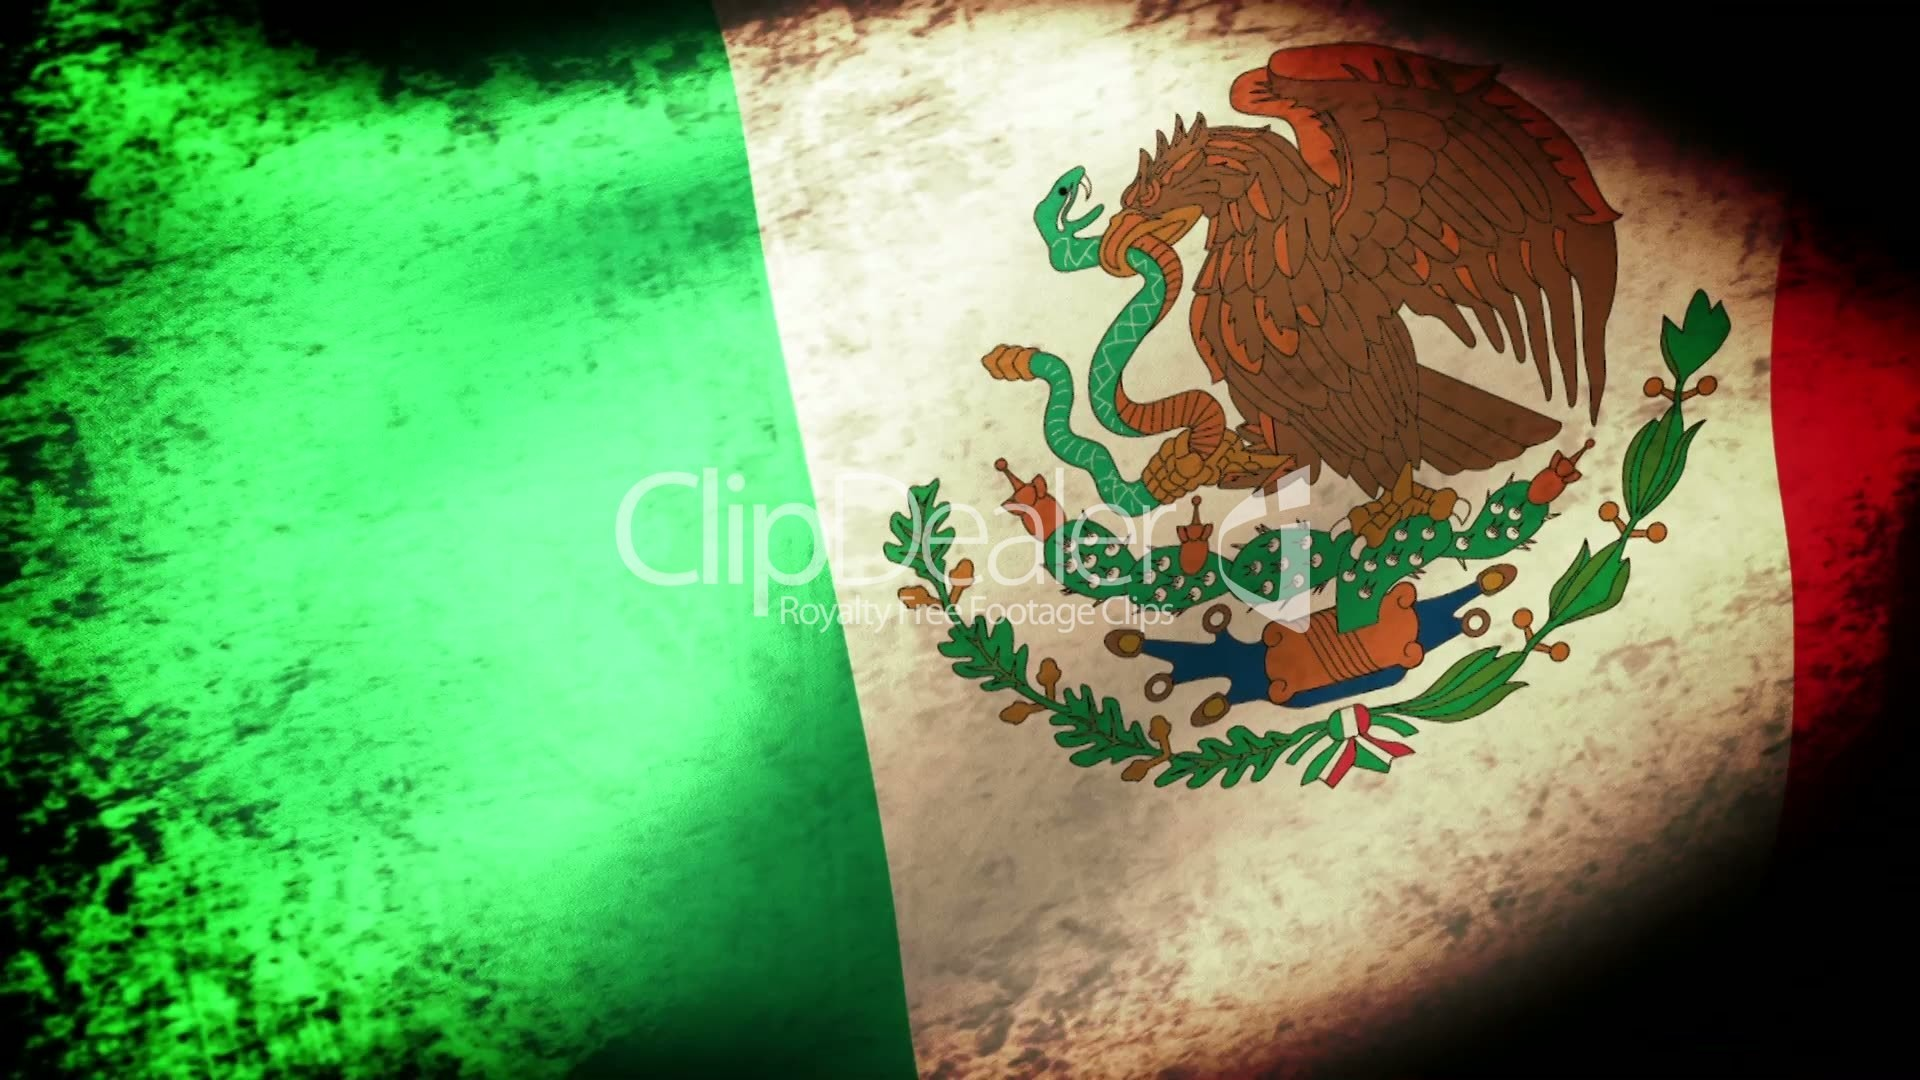 … Nice Mexican Flag Wallpaper Free Wallpaper For Desktop and Mobile in  All Resolutions Free Download Hd